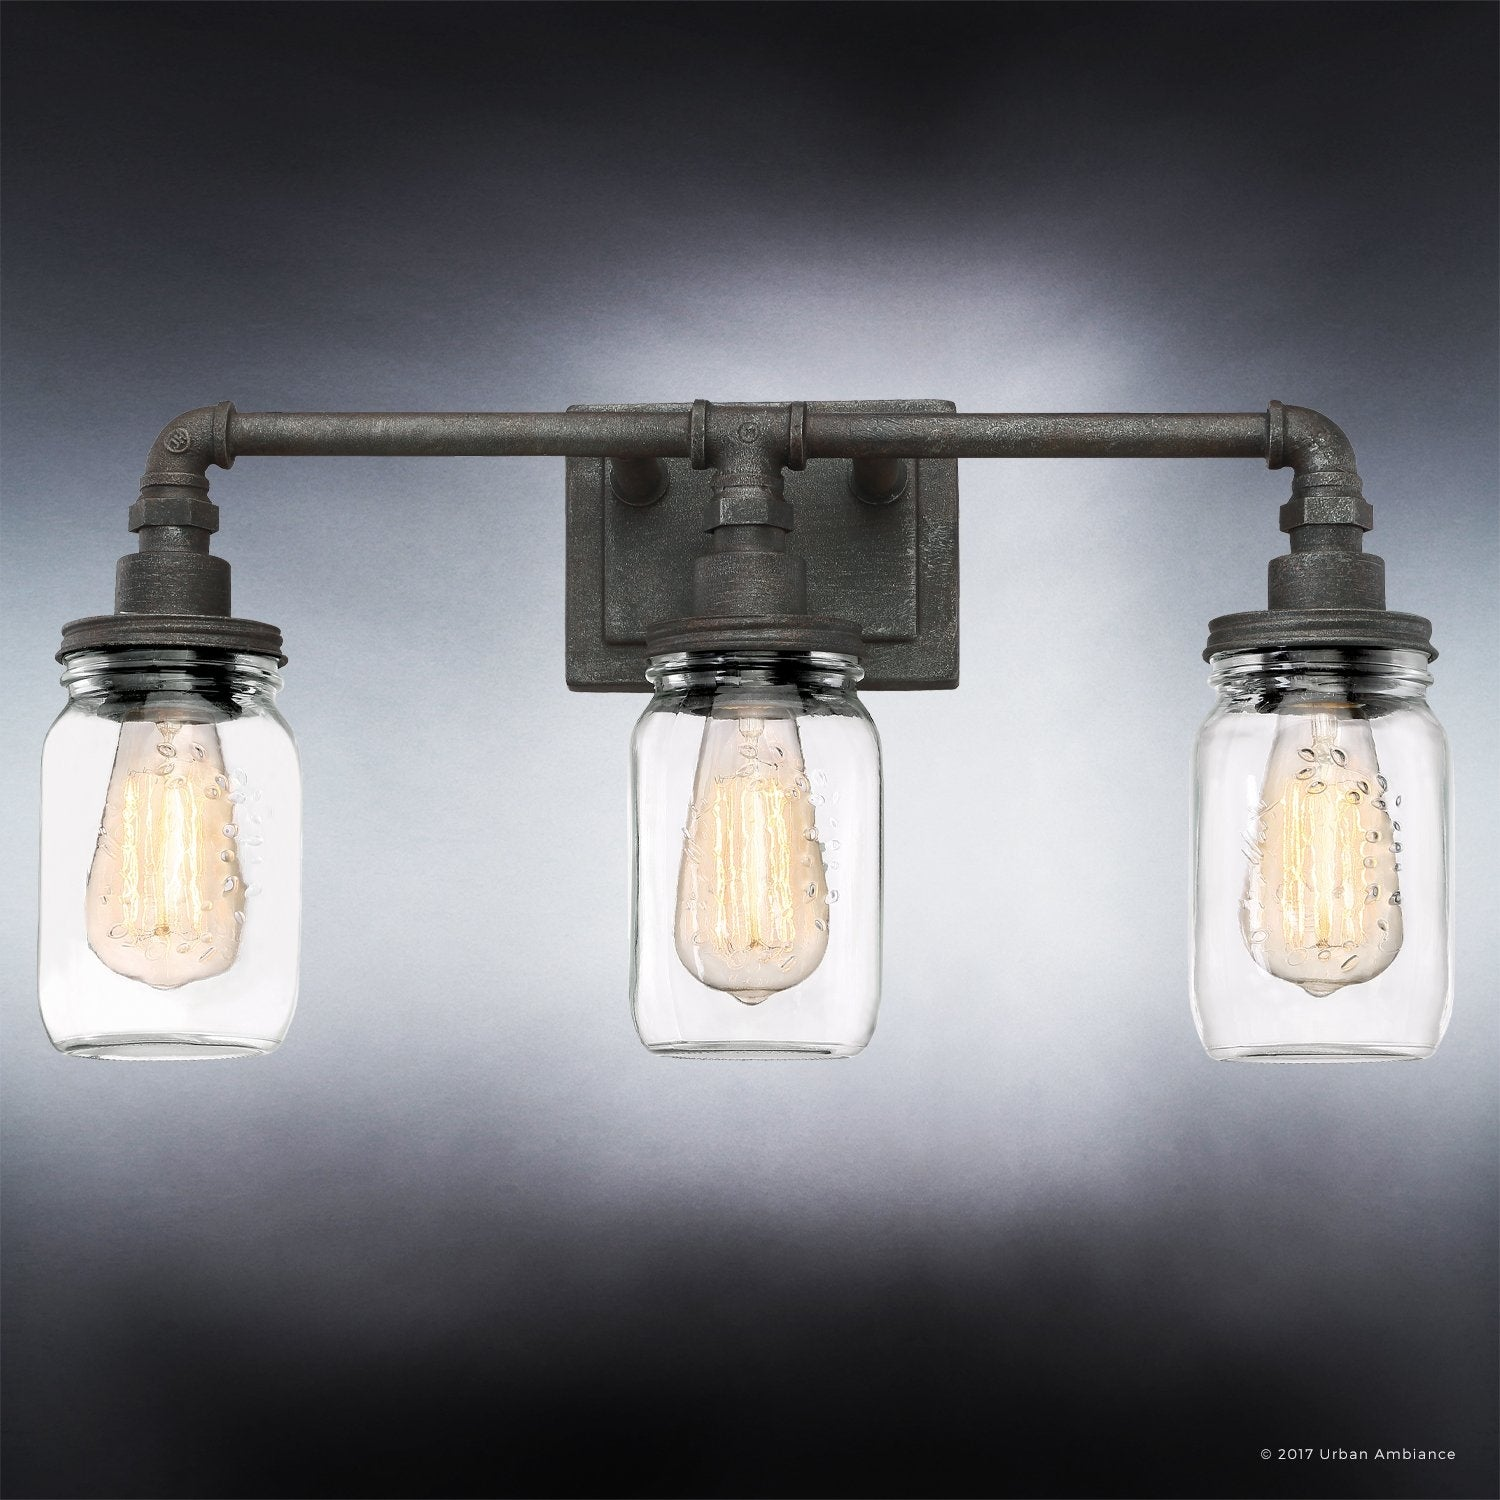 Luxury industrial bathroom light 11h x 215w with shabby chic luxury industrial bathroom light 11h x 215w with shabby chic style aged pipe designantique black finish free shipping today overstock 25476164 mozeypictures Choice Image